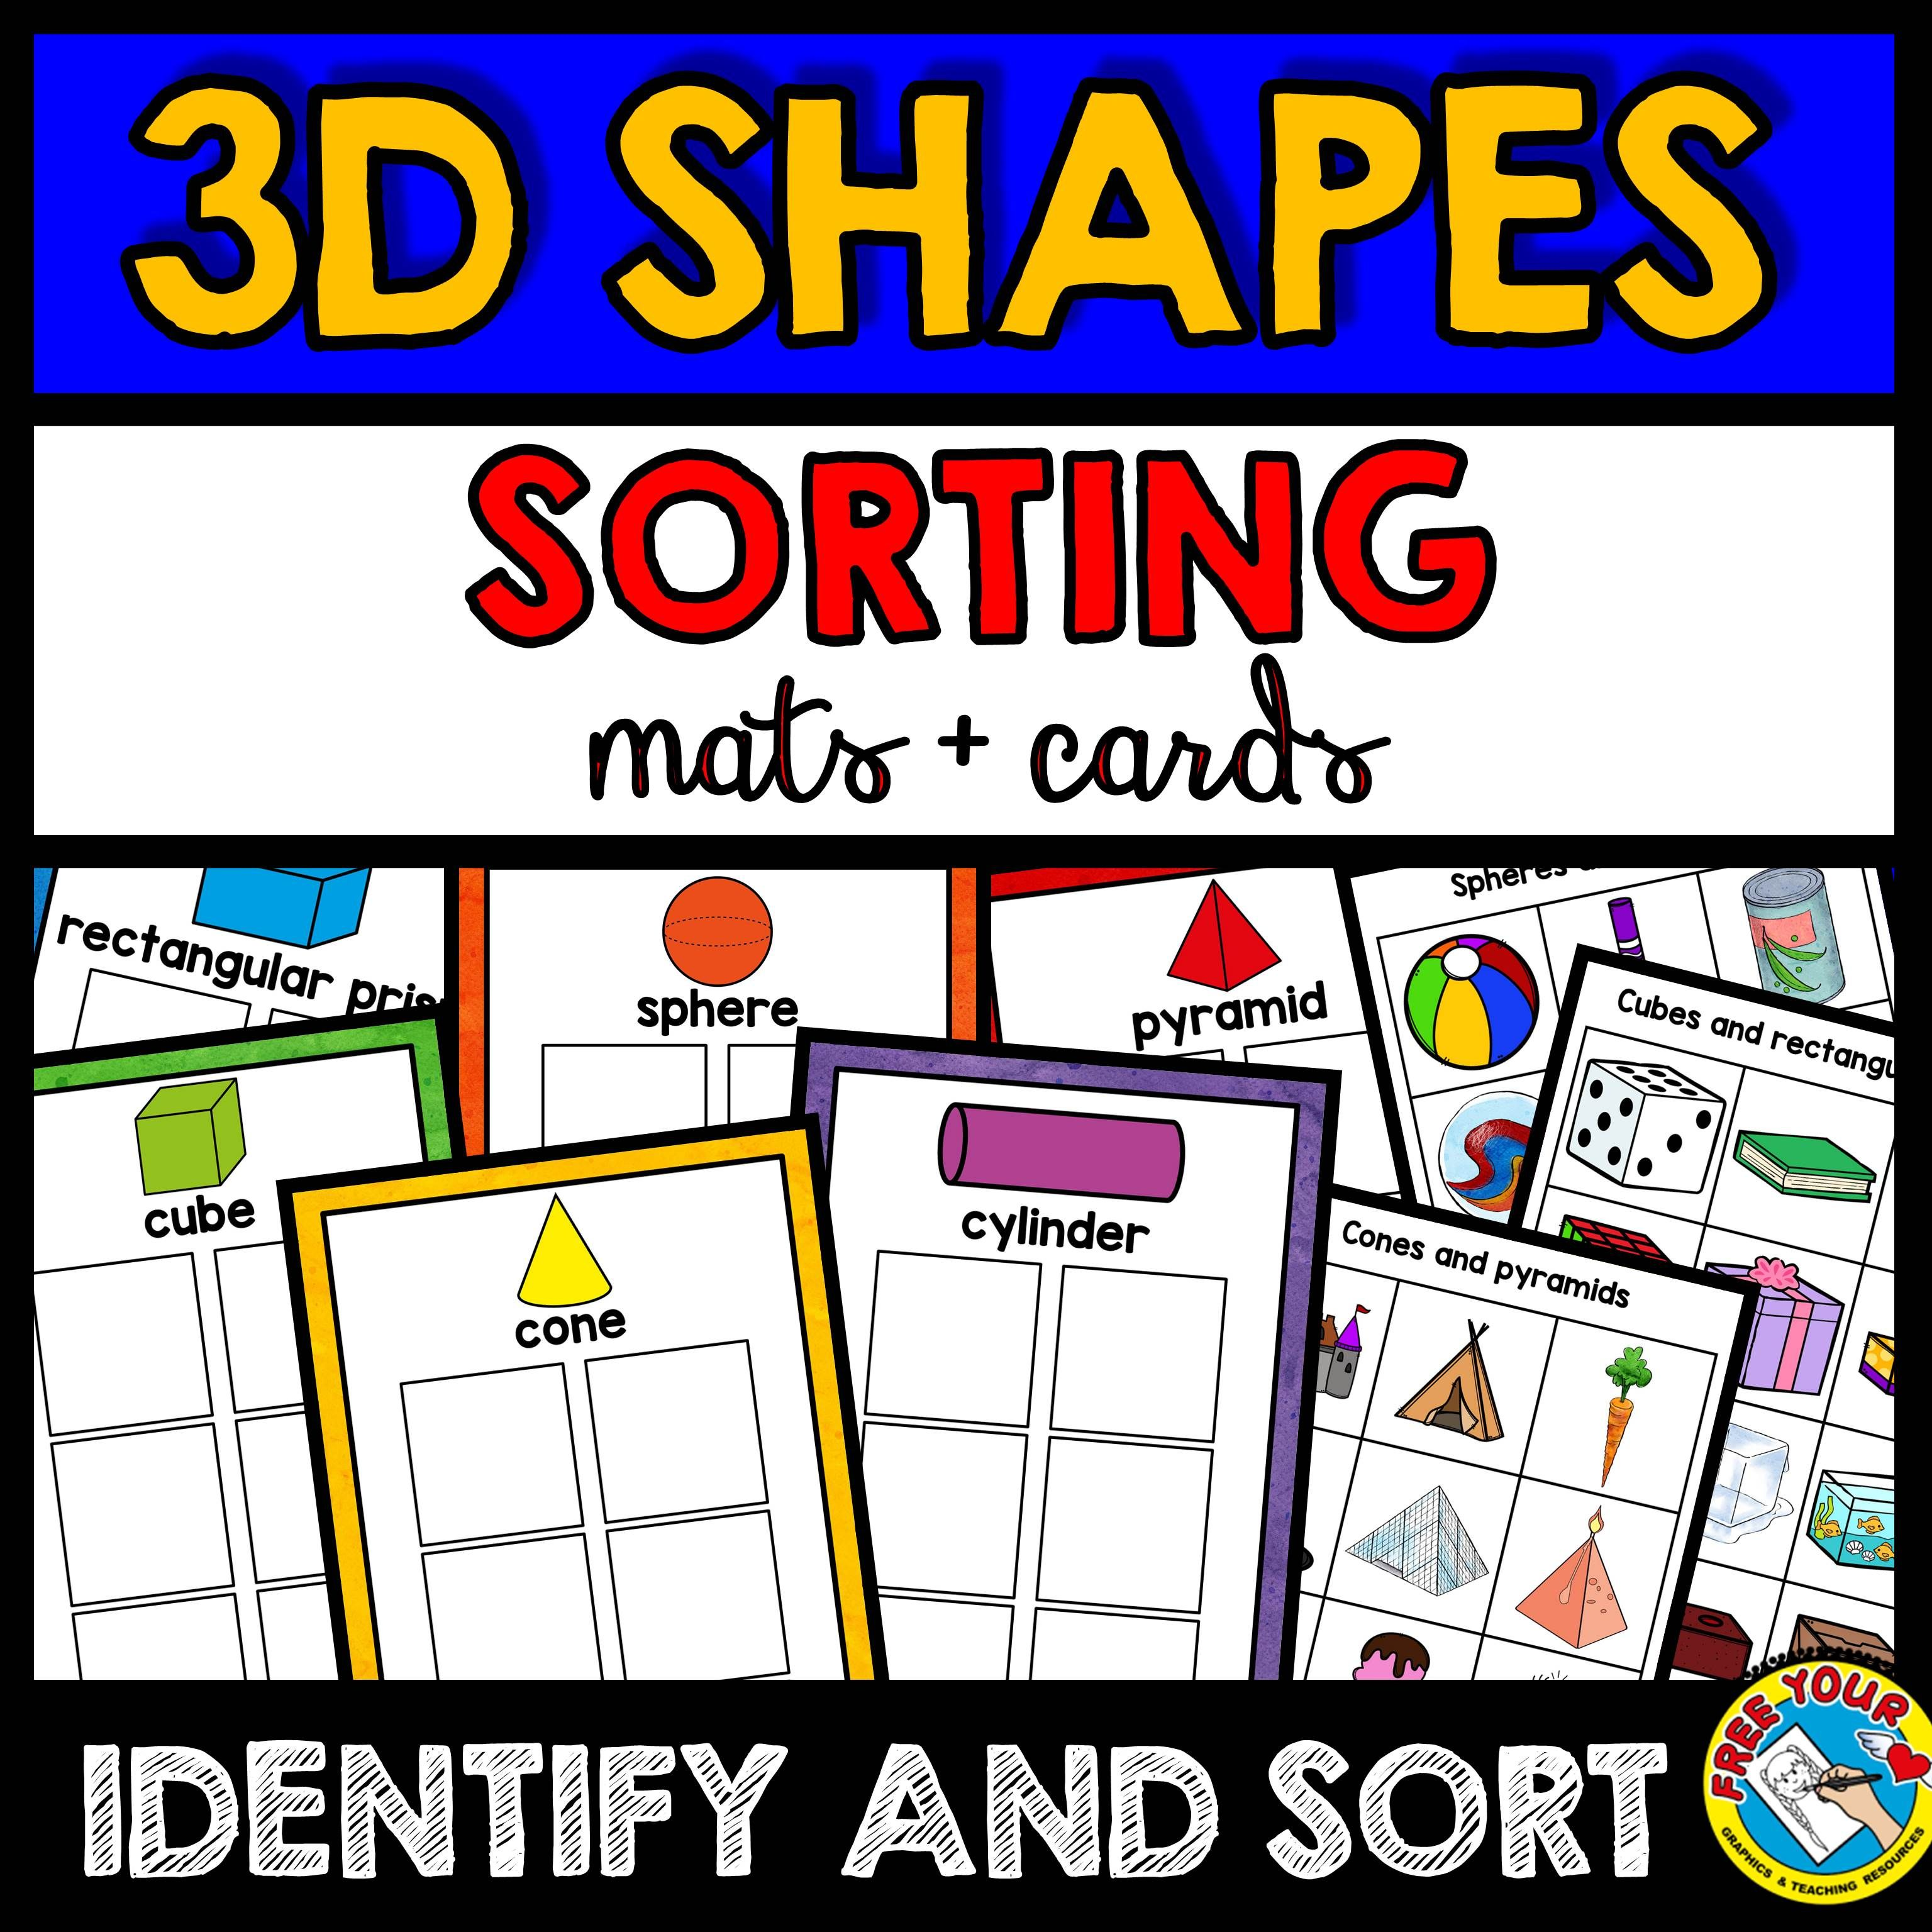 Real Life 3d Shapes Sorting Activity Mats And Cards